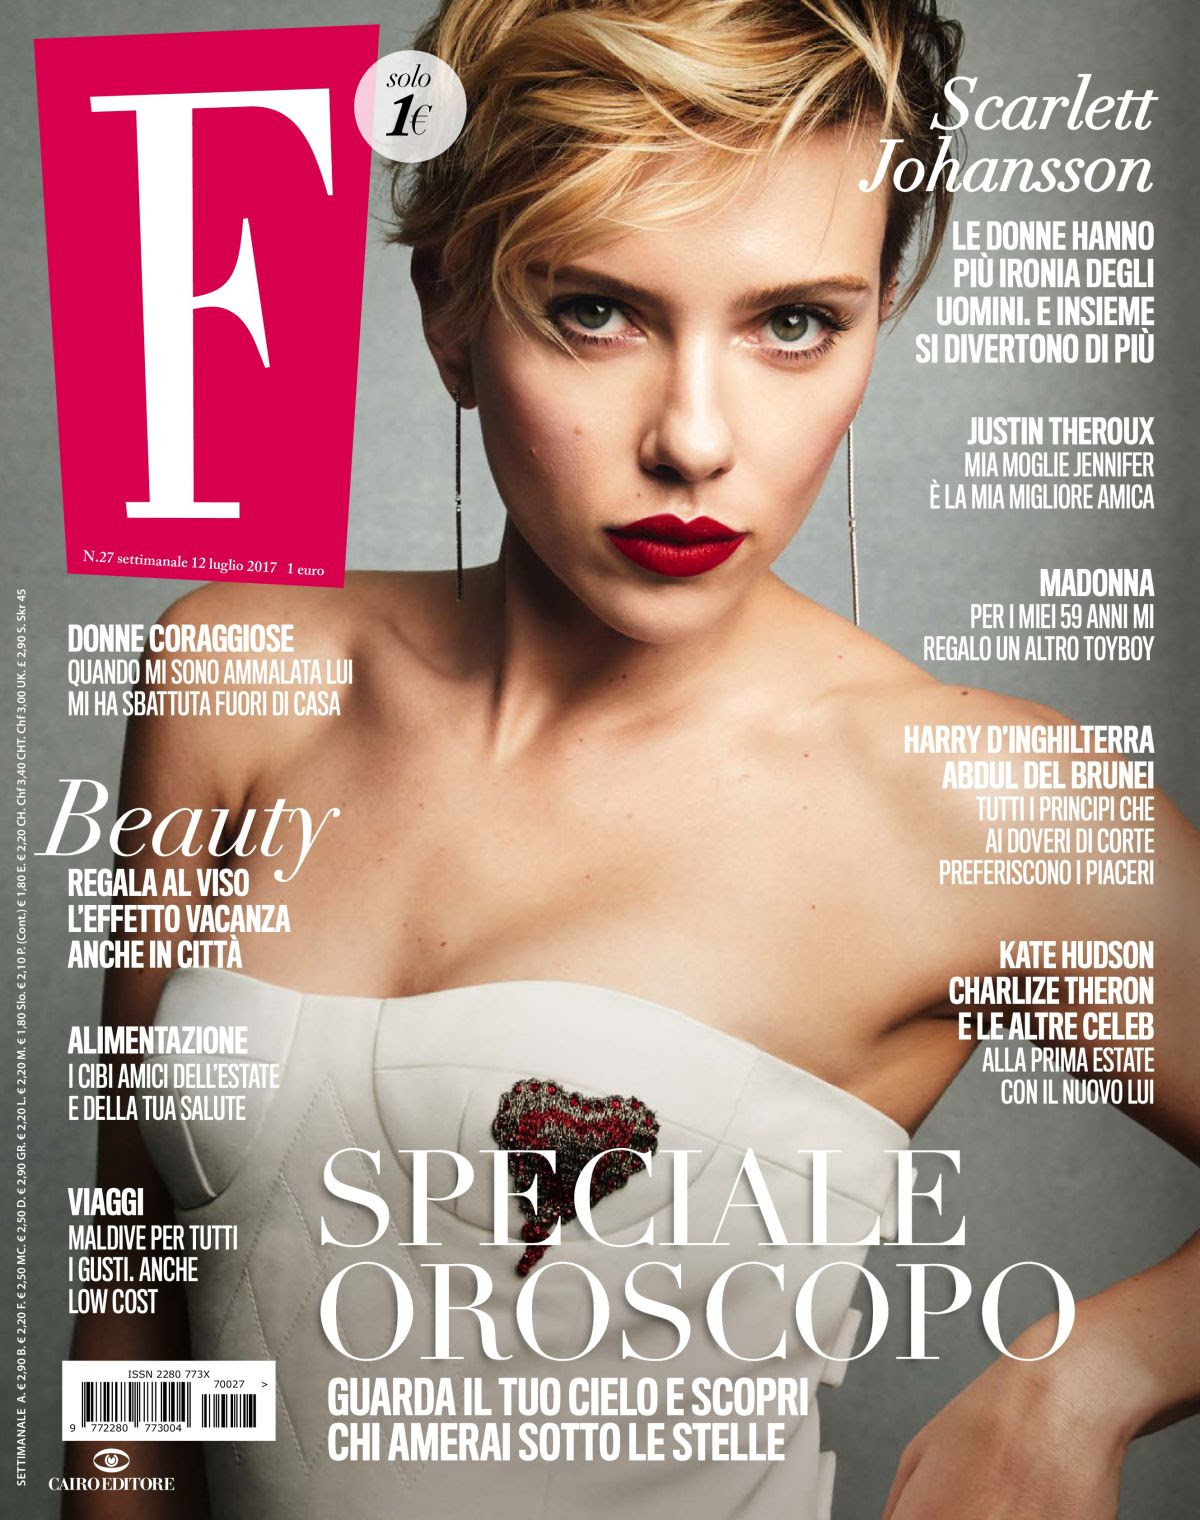 SCARLETT JOHANSSON in F Magazine, July 2017